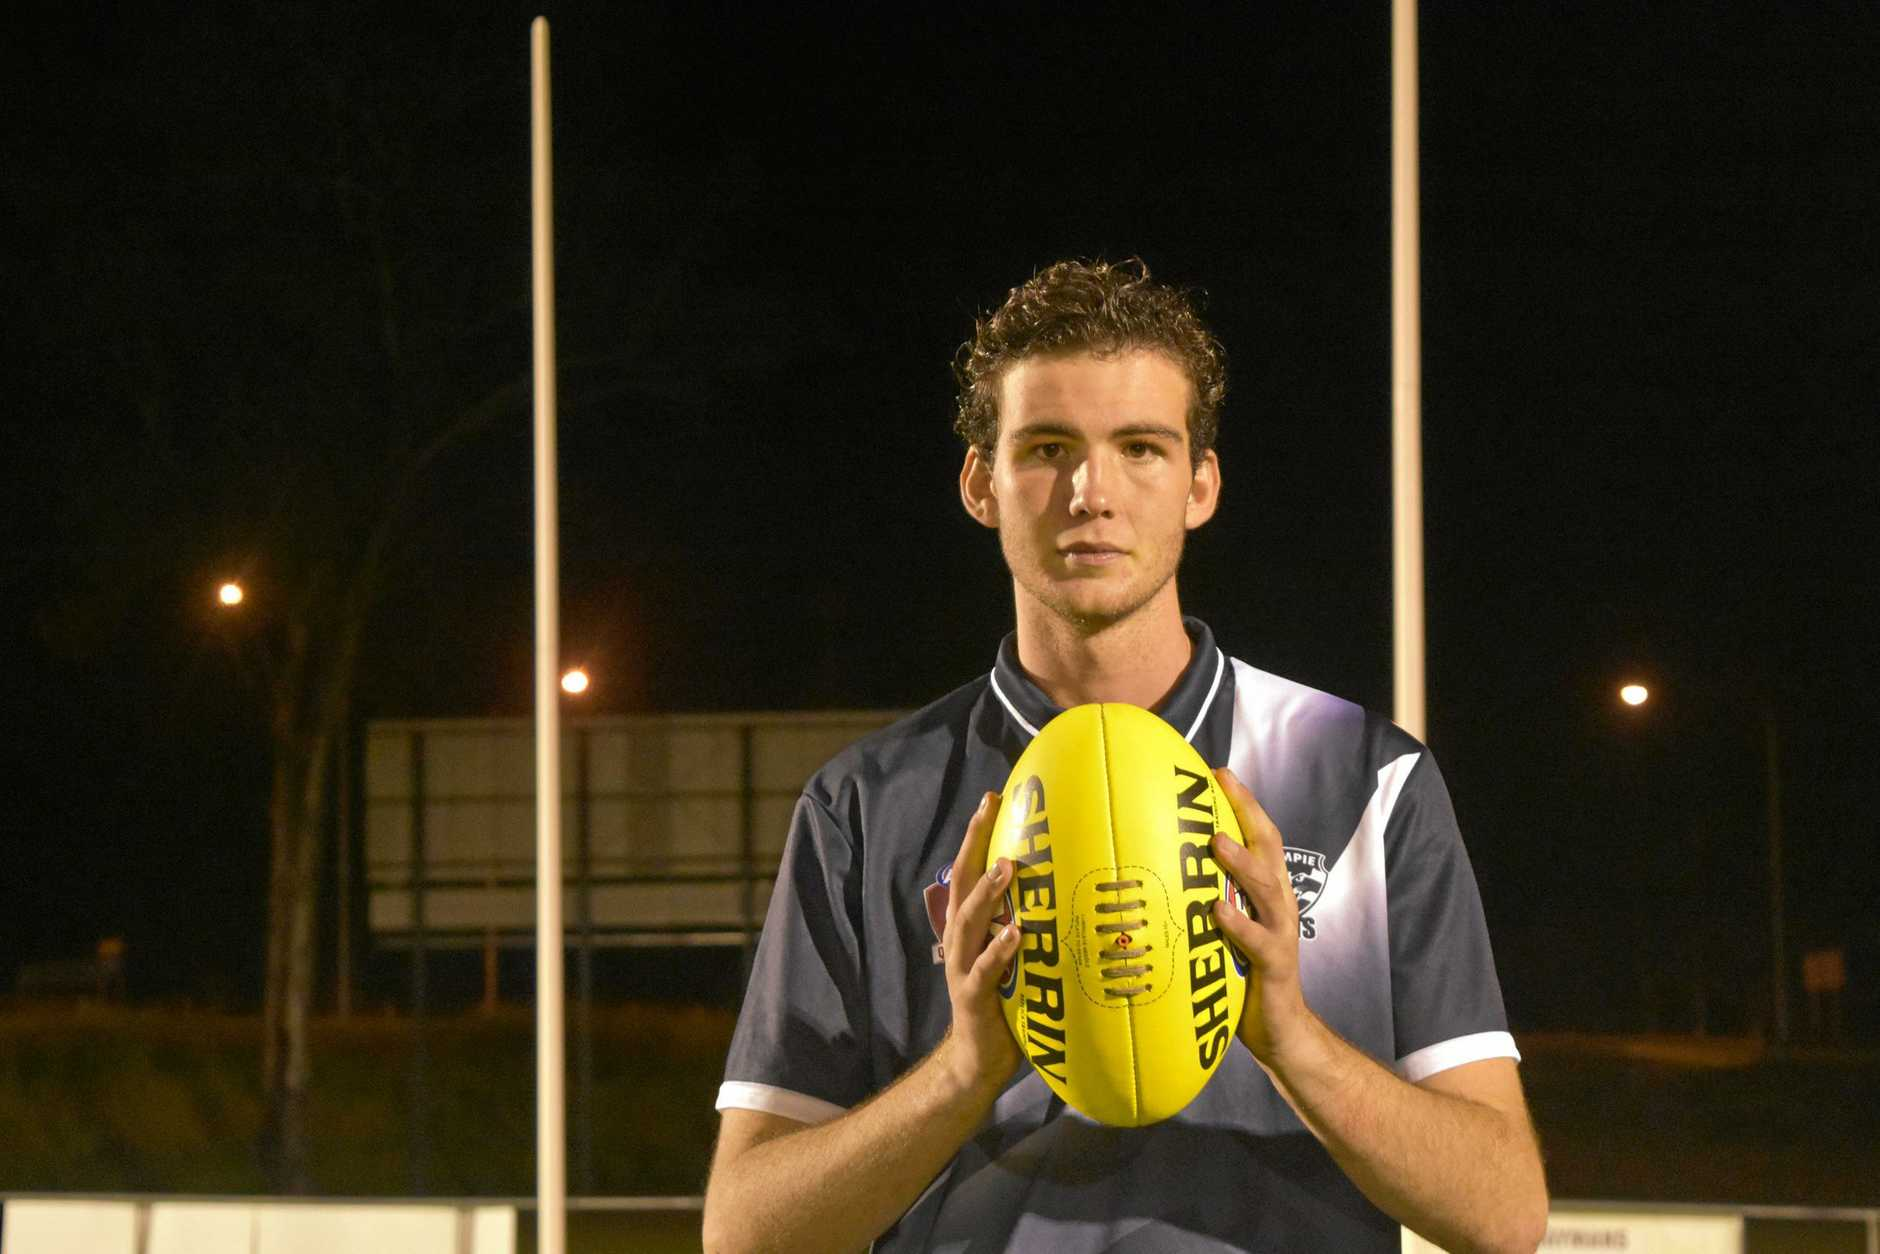 SHINING LIGHT: Gympie Cats ruckman Ronan Neville, 17, has a big future in the sport, according to his coach Dave Carroll.